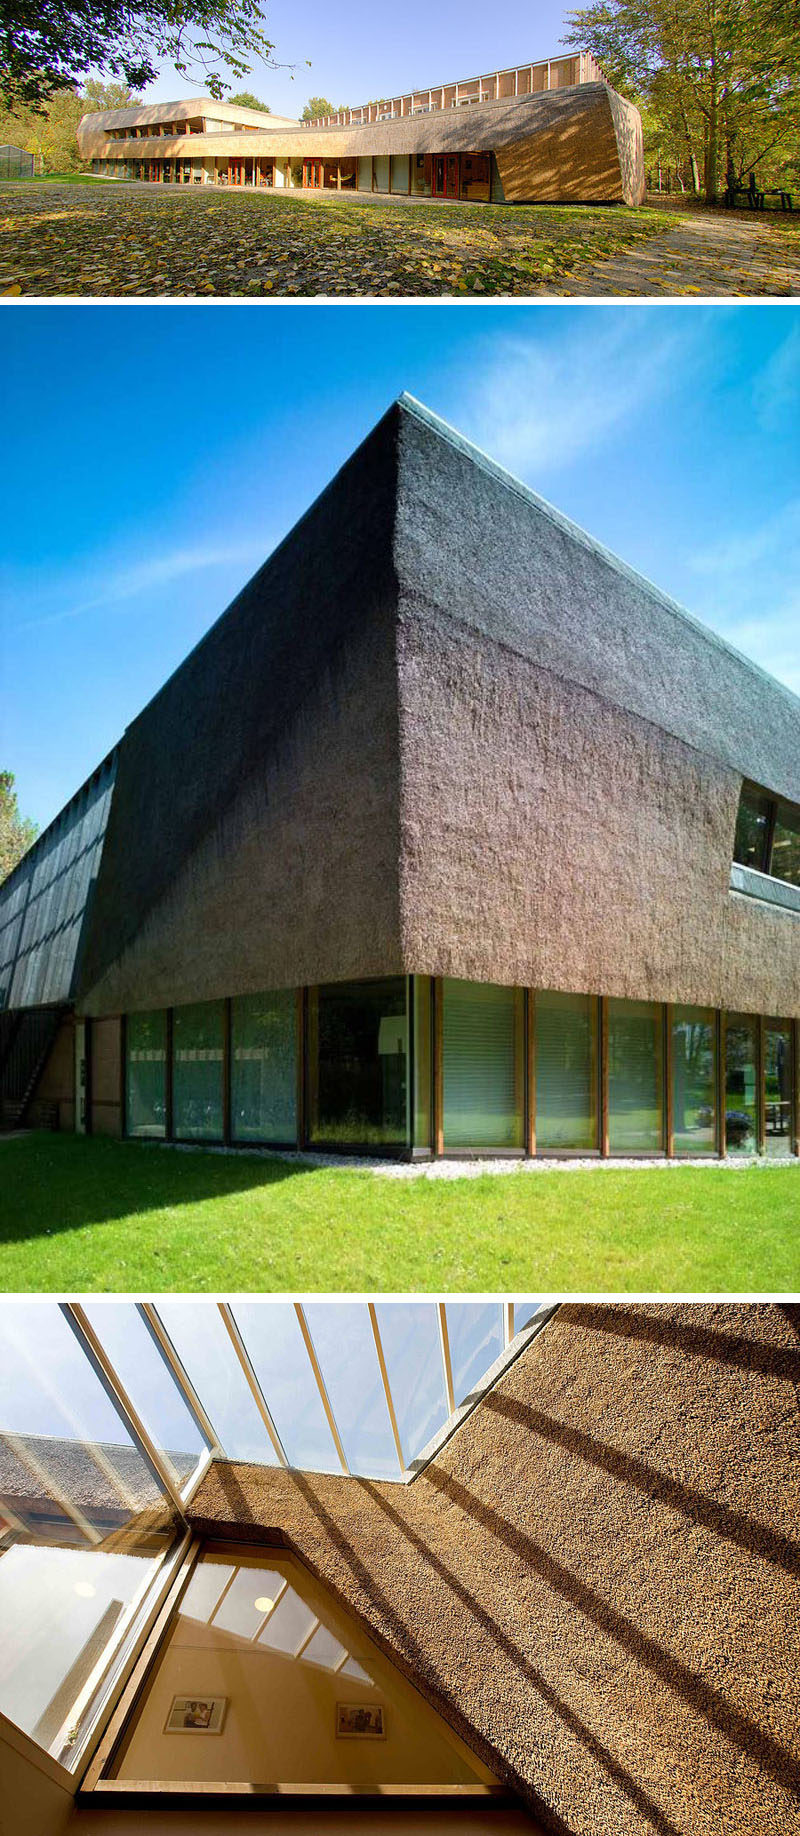 12 Examples Of Modern Houses And Buildings That Have A Thatched Roof // This daycare centre extension and remodel is covered with thatch to create a unique tactile experience for the kids who attend the daycare.